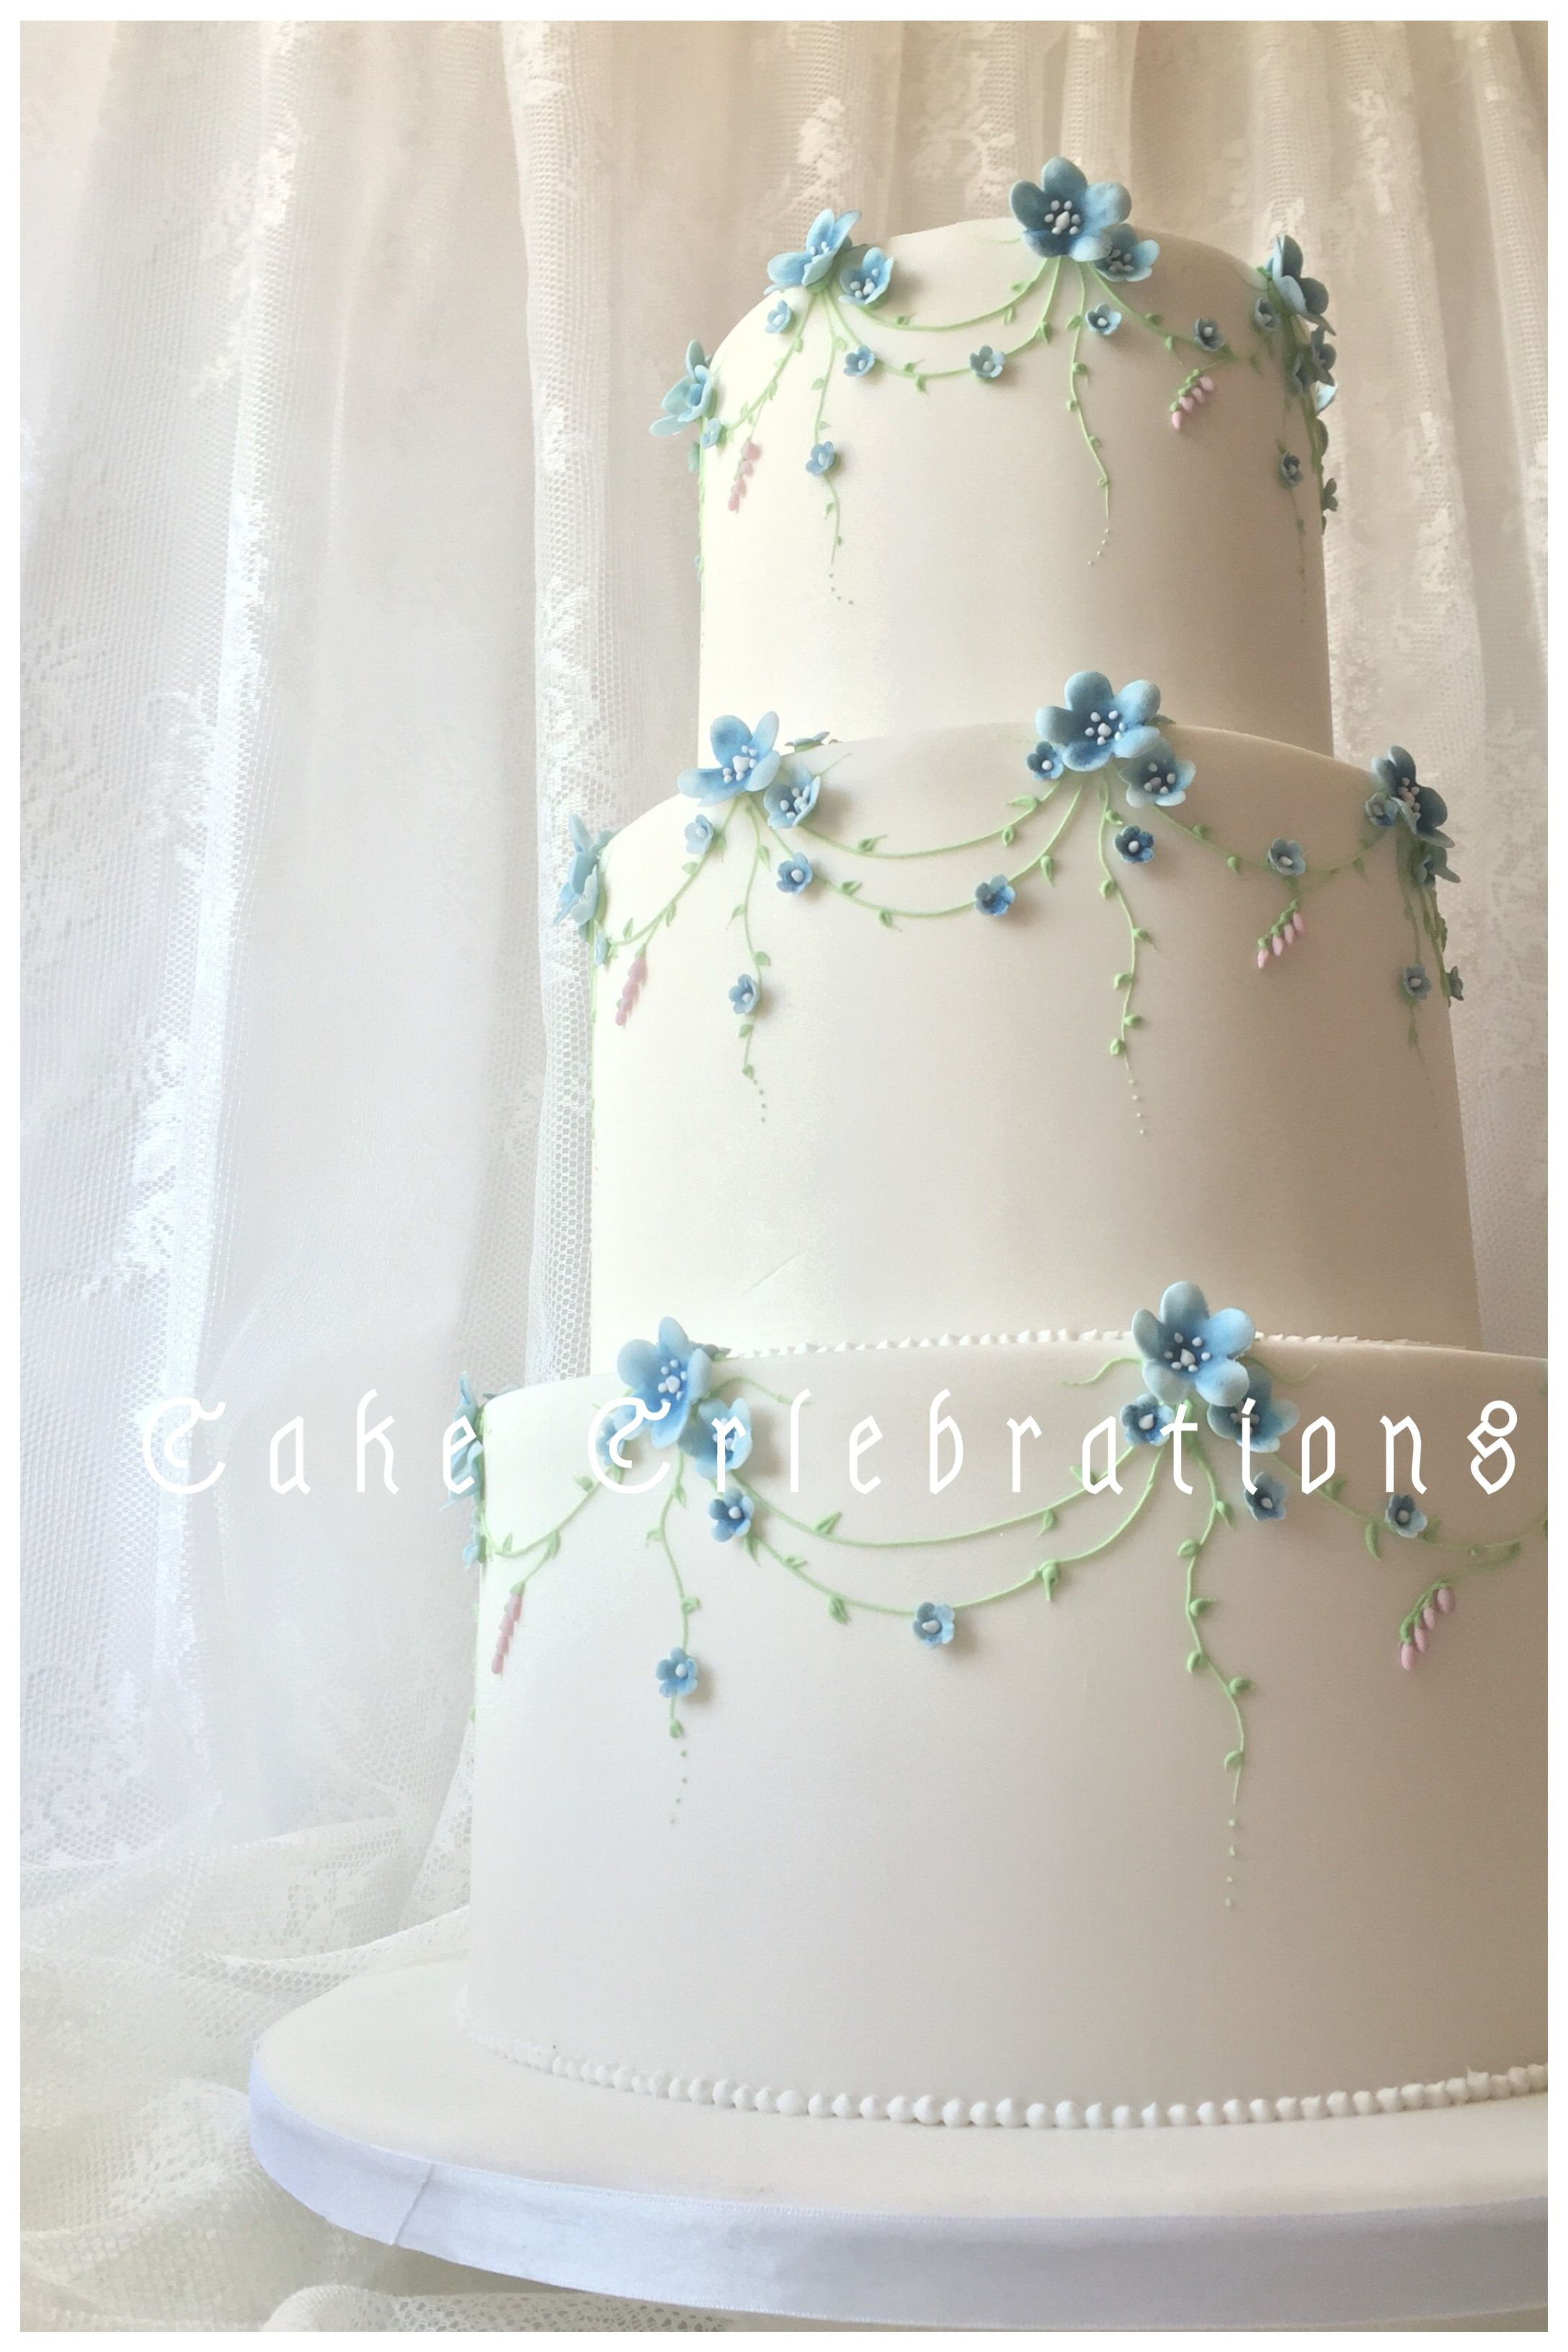 Forget Me Not Cake Made For Display Wedding Cakecelebrations Blue Diy Wedding Cake Wedding Cake Designs Amazing Wedding Cakes